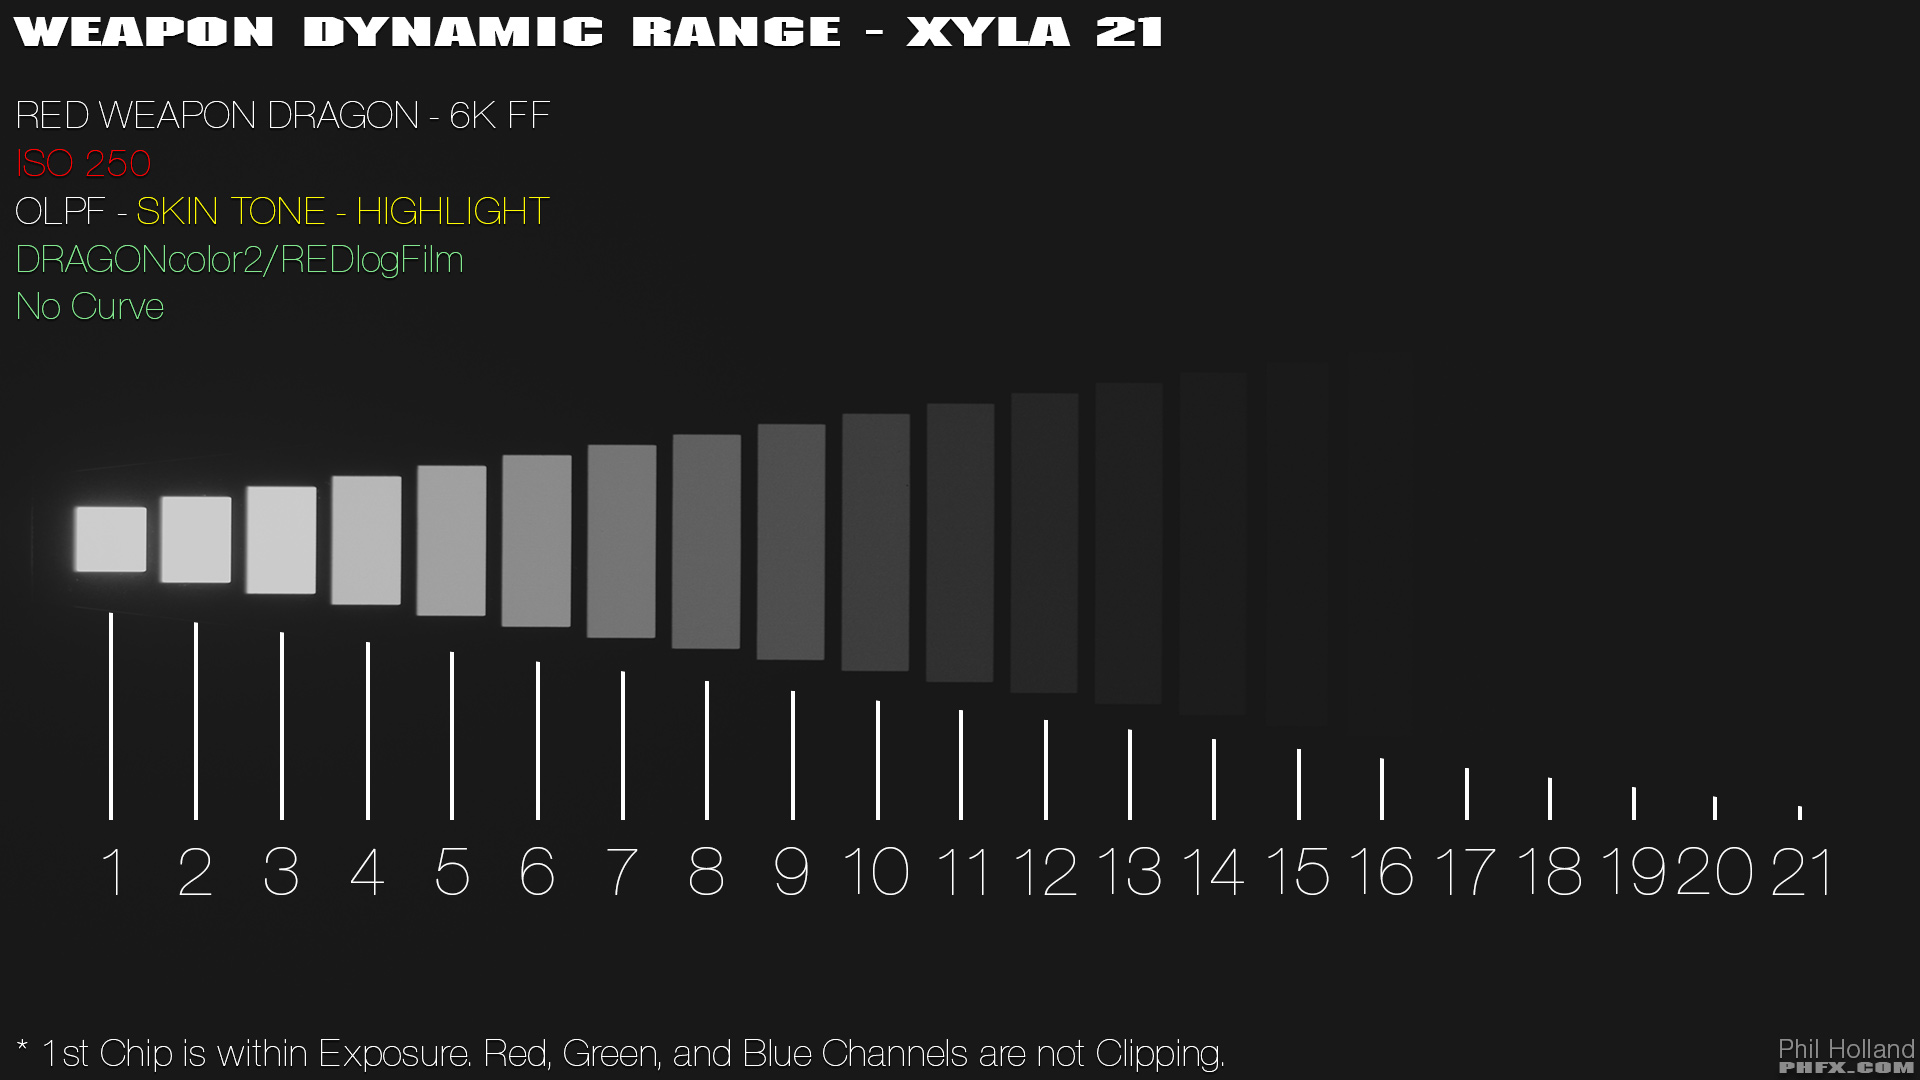 Red Raven Specs Red Vs Red The Dynamic Range Of The Weapon And Epic Dragon